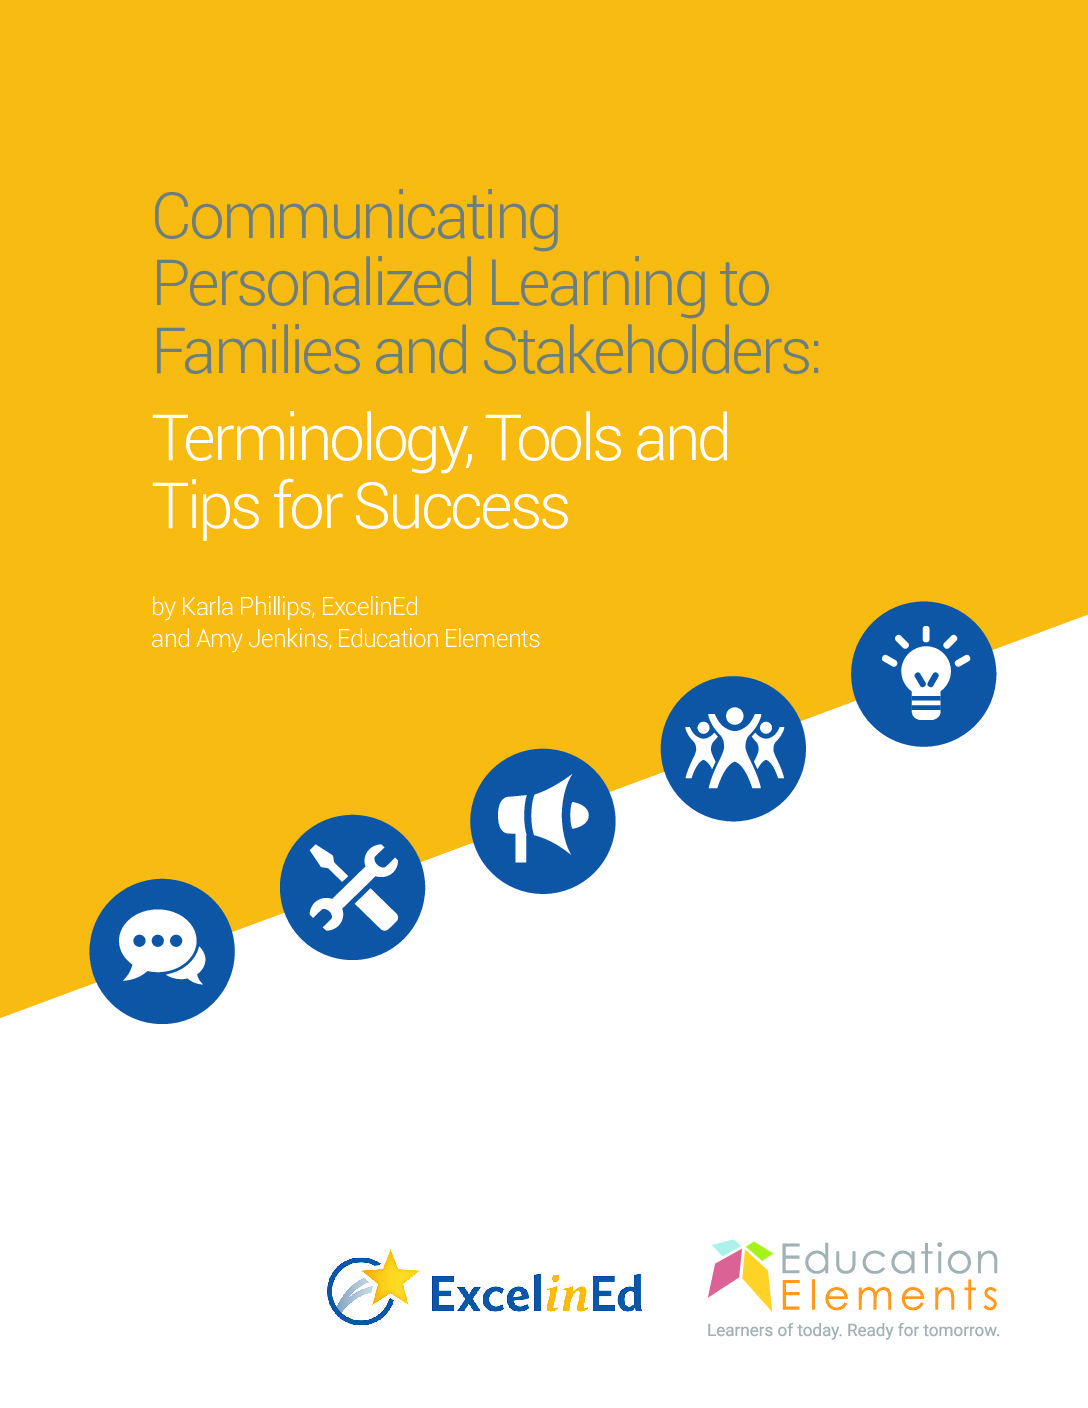 Communicating Personalized Learning to Families &#038; Stakeholders &#8211; April 2018>									 									</a> 									<h5><a href=